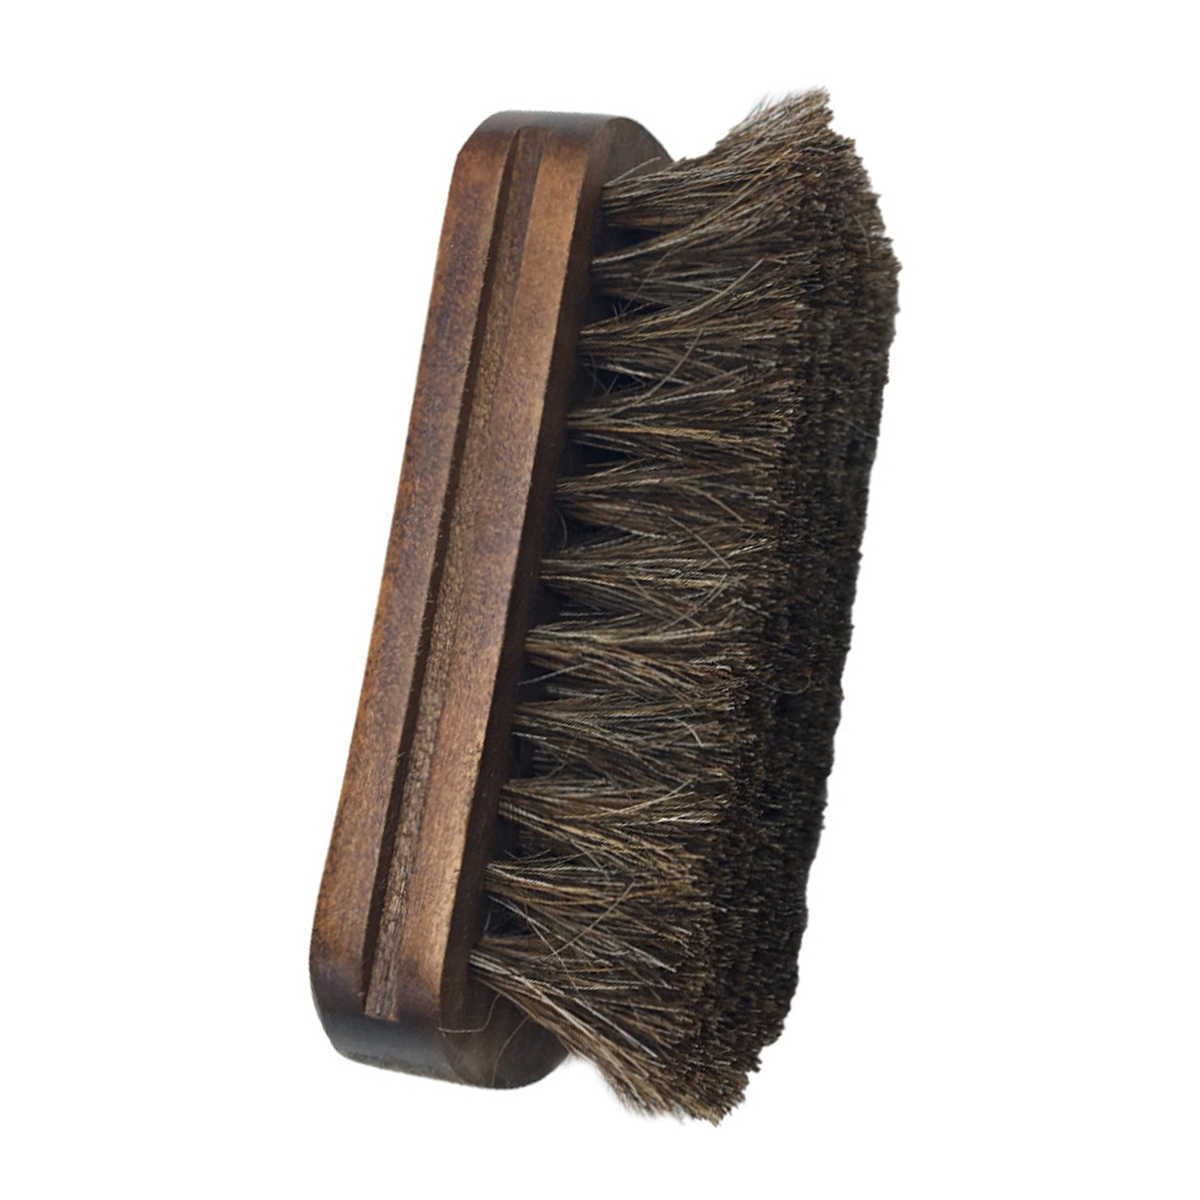 Horsehair Shoe Shine Brush Soft Genuine Horse Hair Bristles Wood Handle Shoes Leather Care